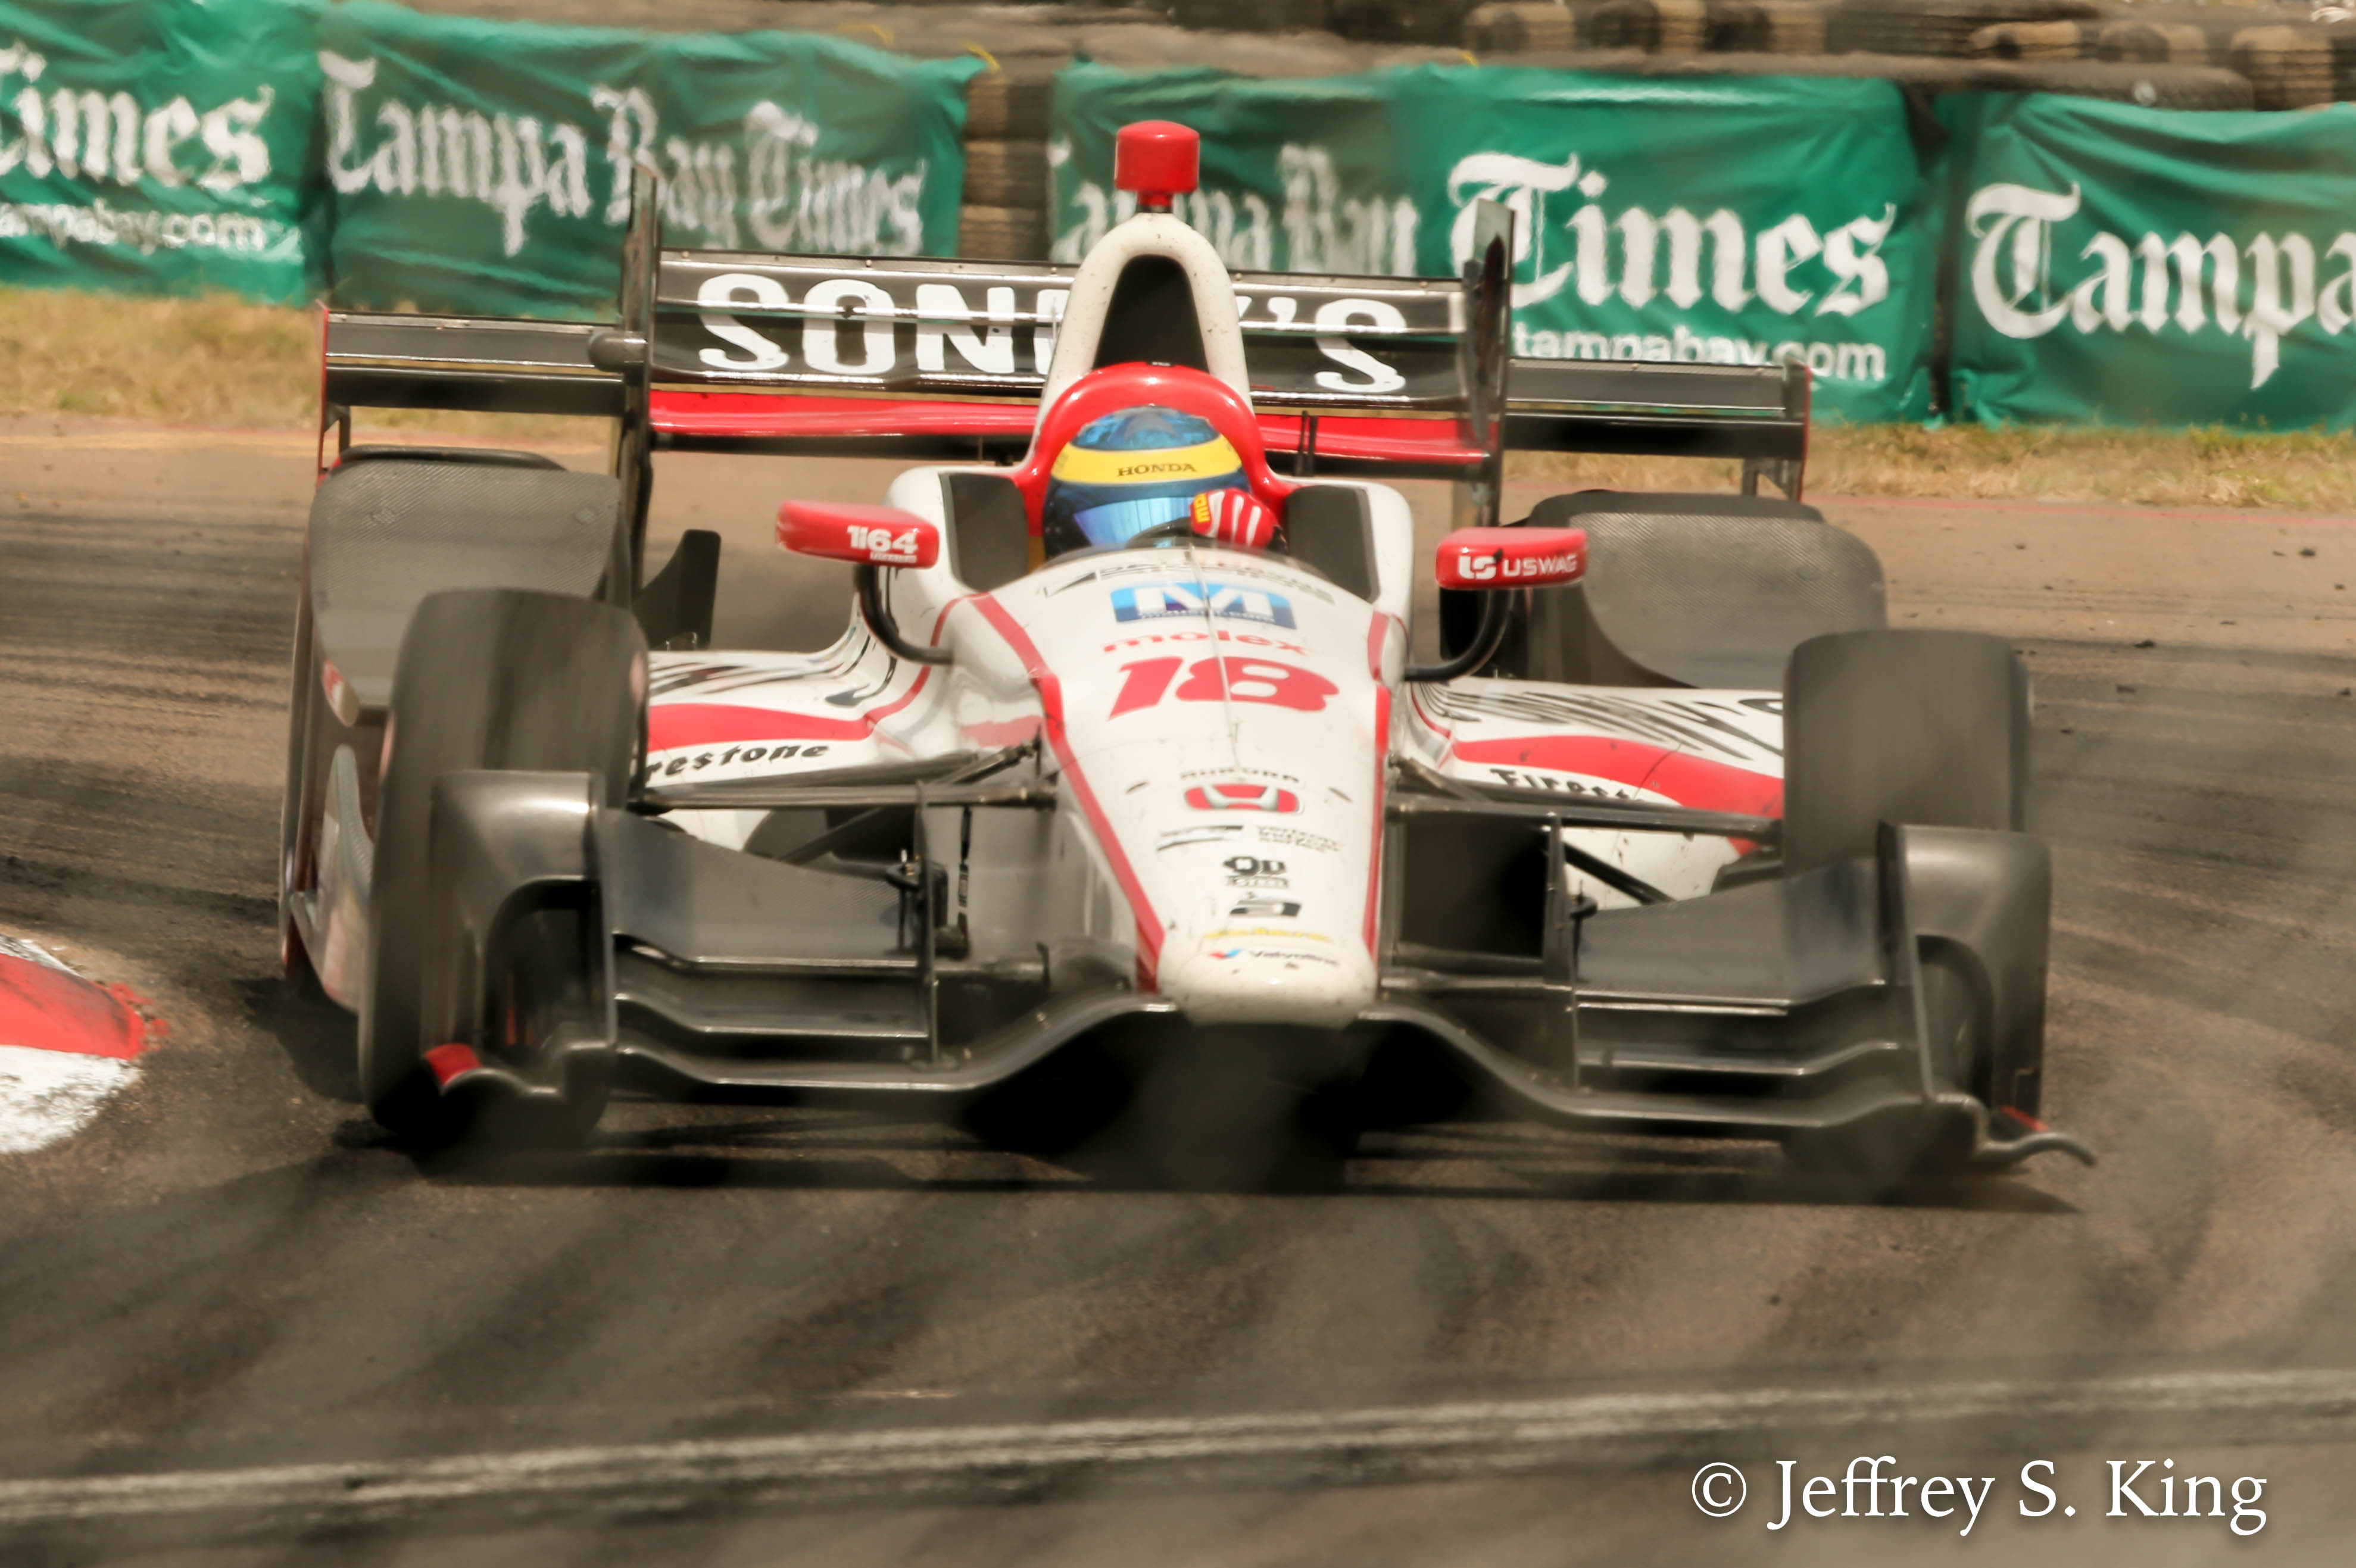 Bourdais went from worst-to-first for the victory./JEFFREY S. KING